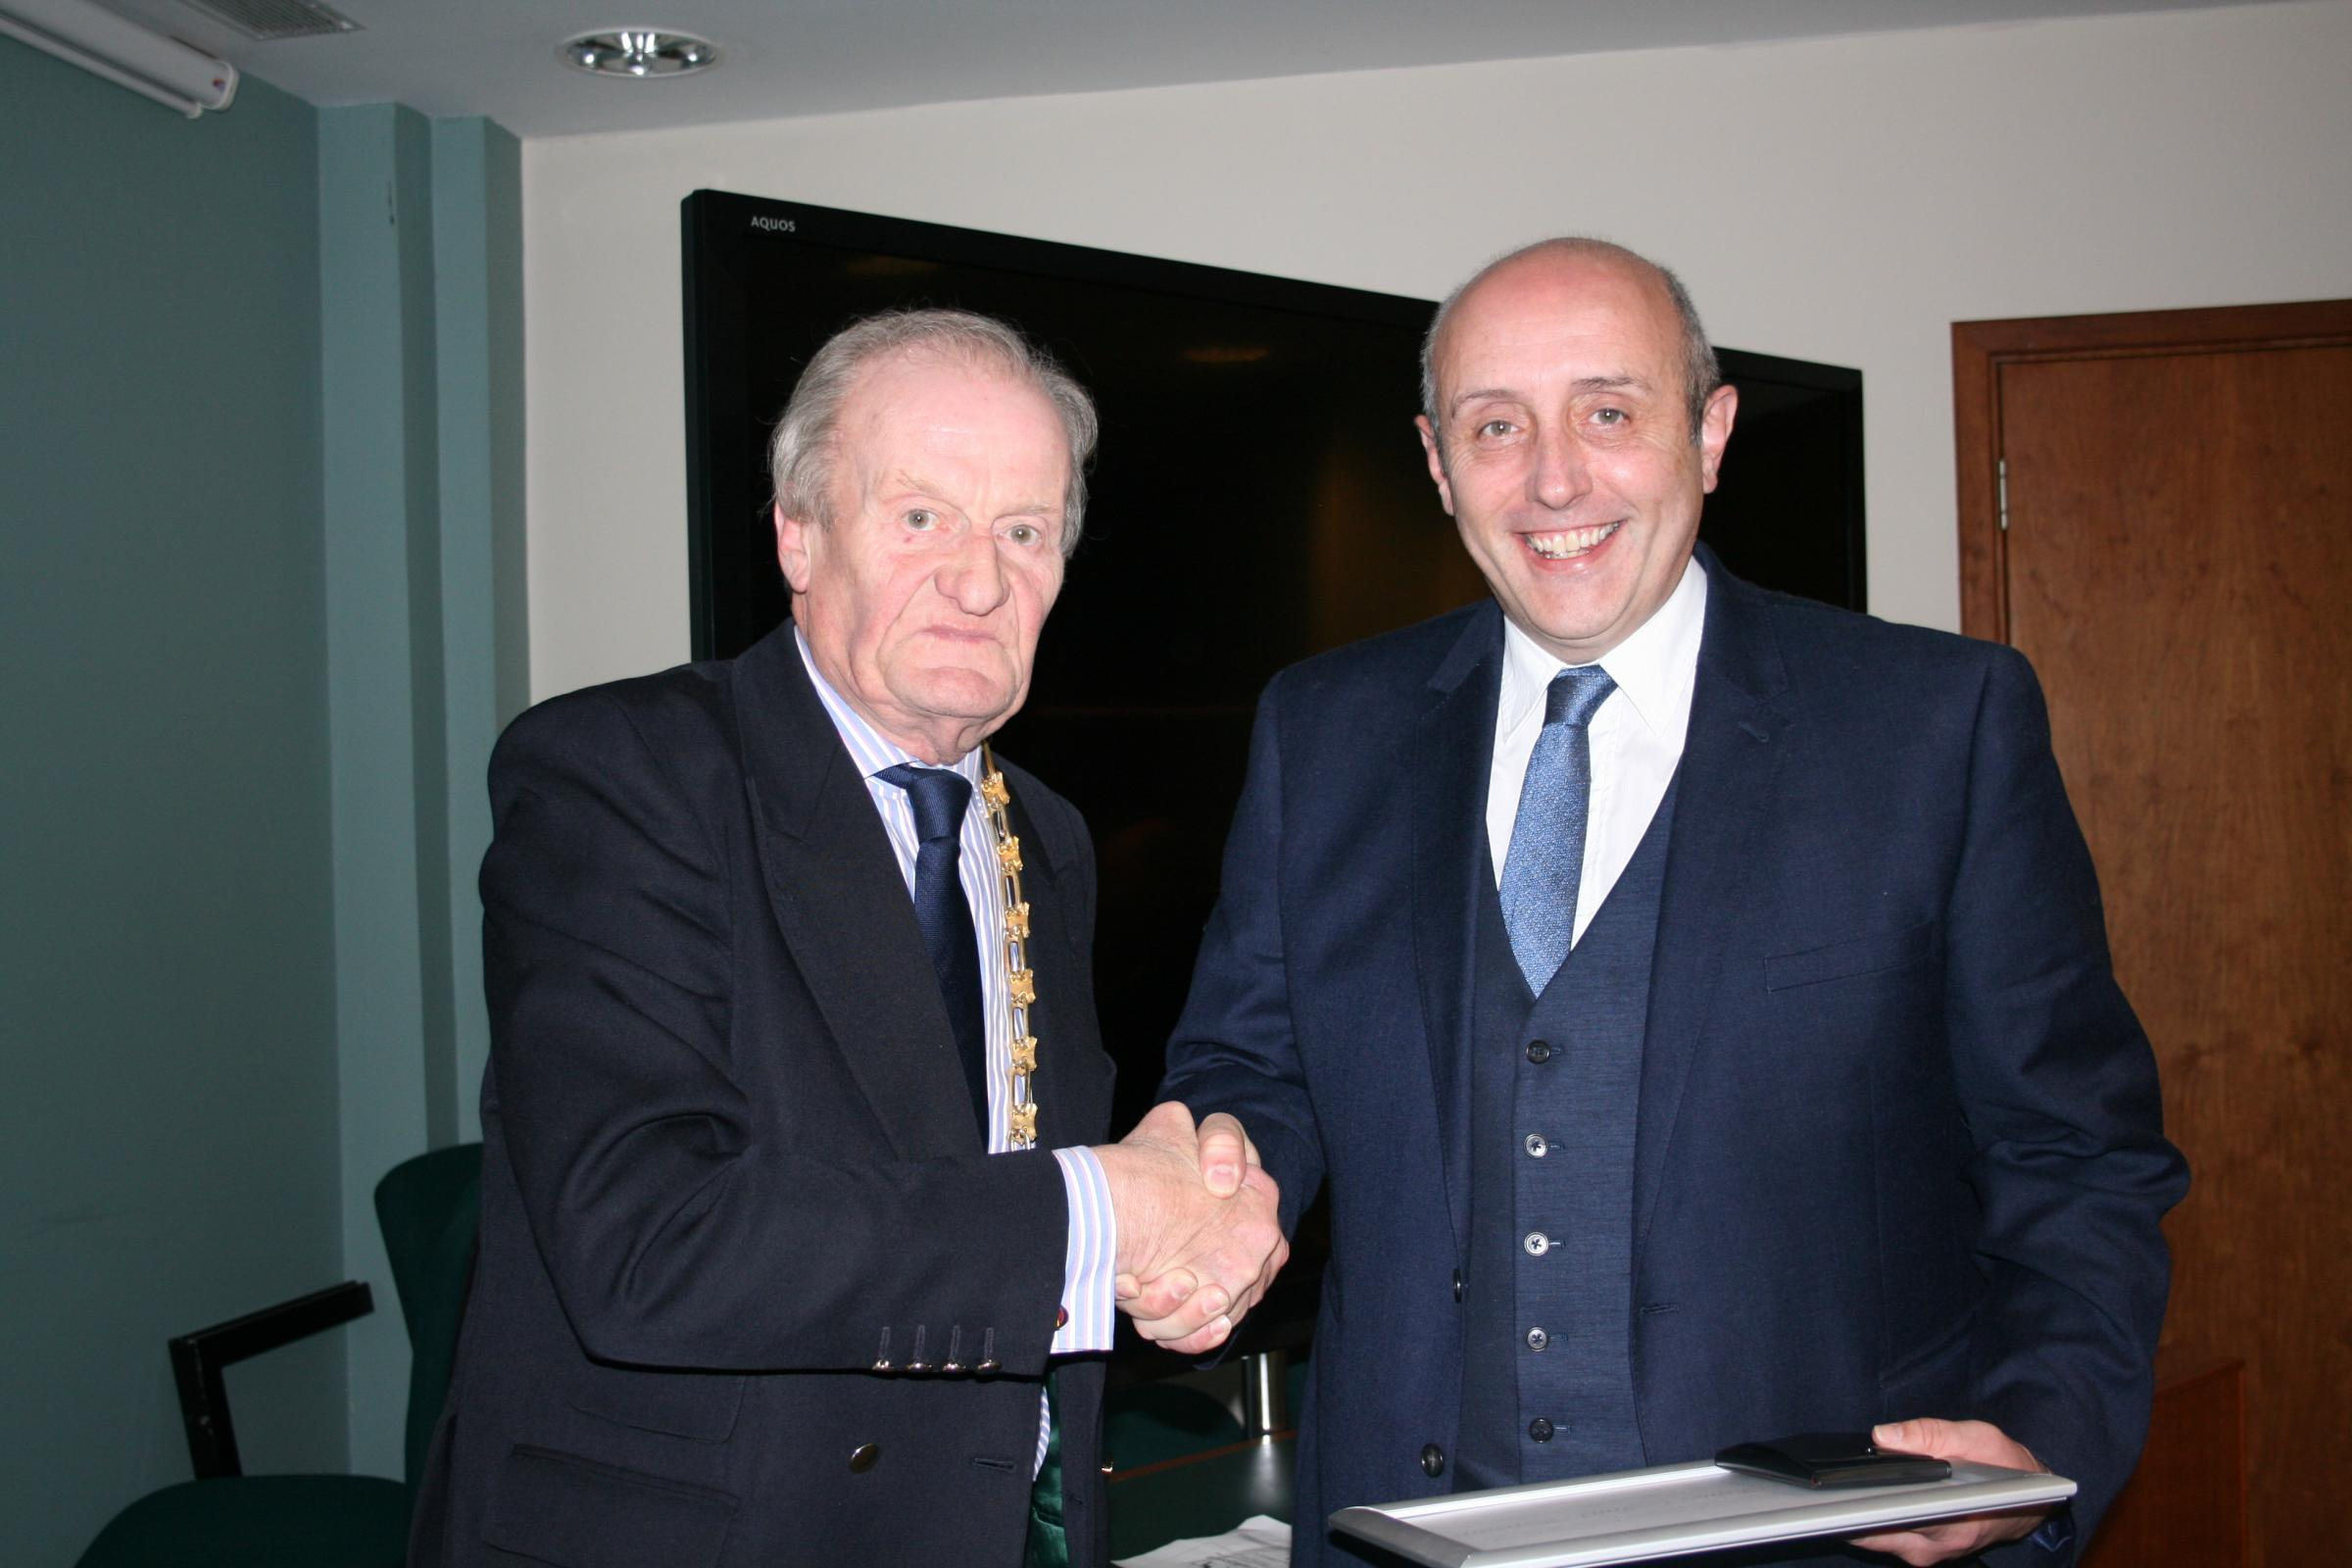 Keith Parsons (right) receives the award from Council chairman Cllr Julian Beale